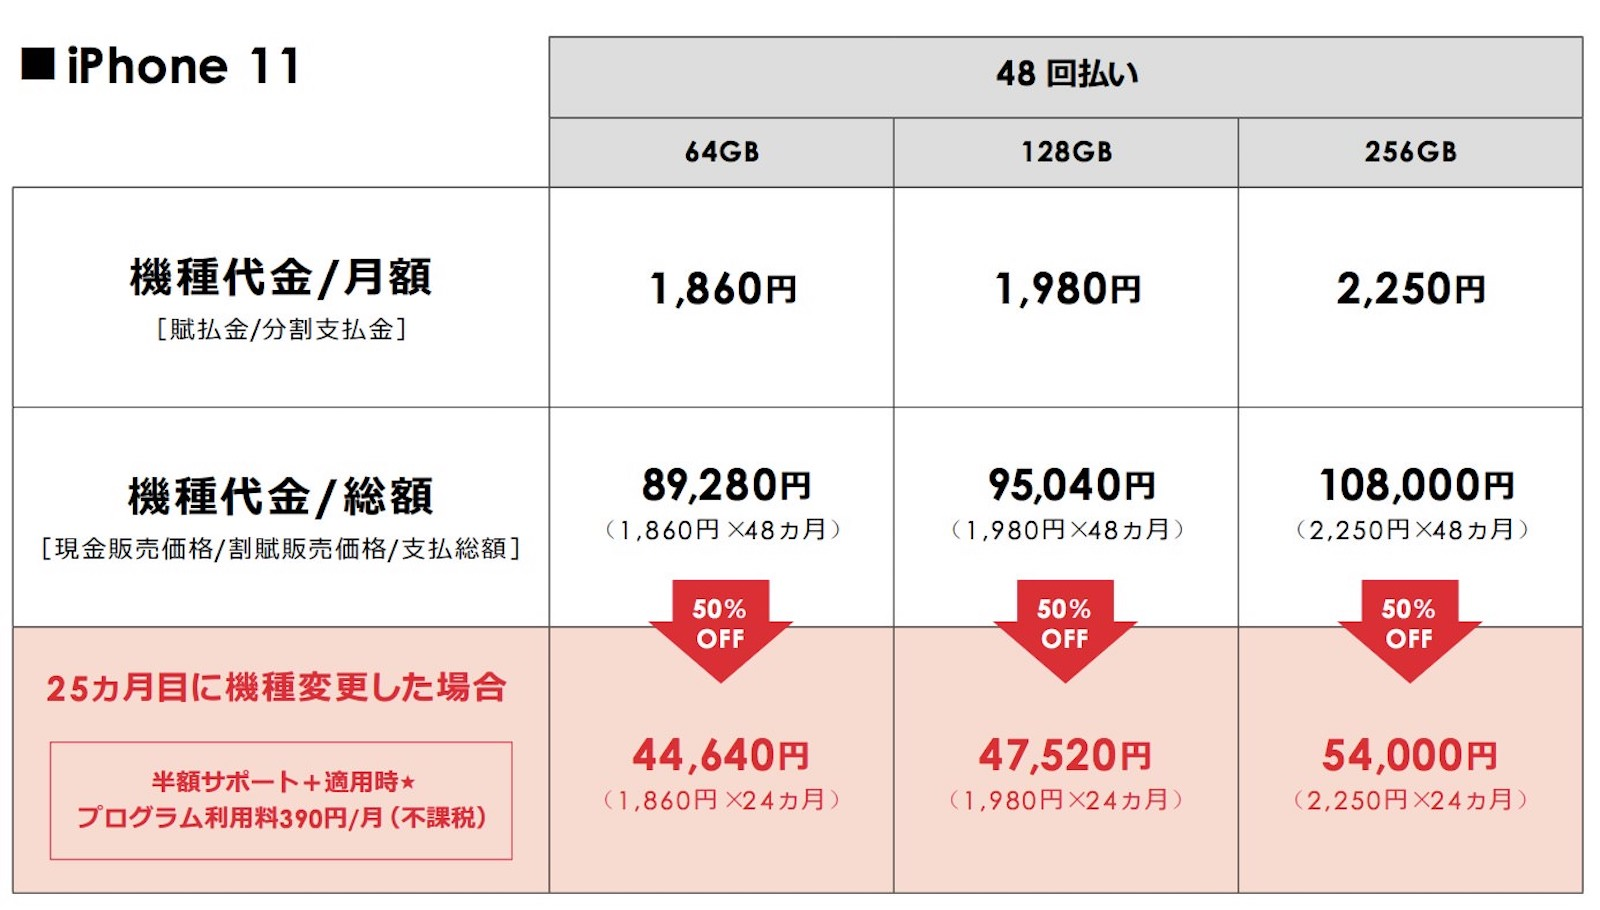 Softbank pricing iphone11